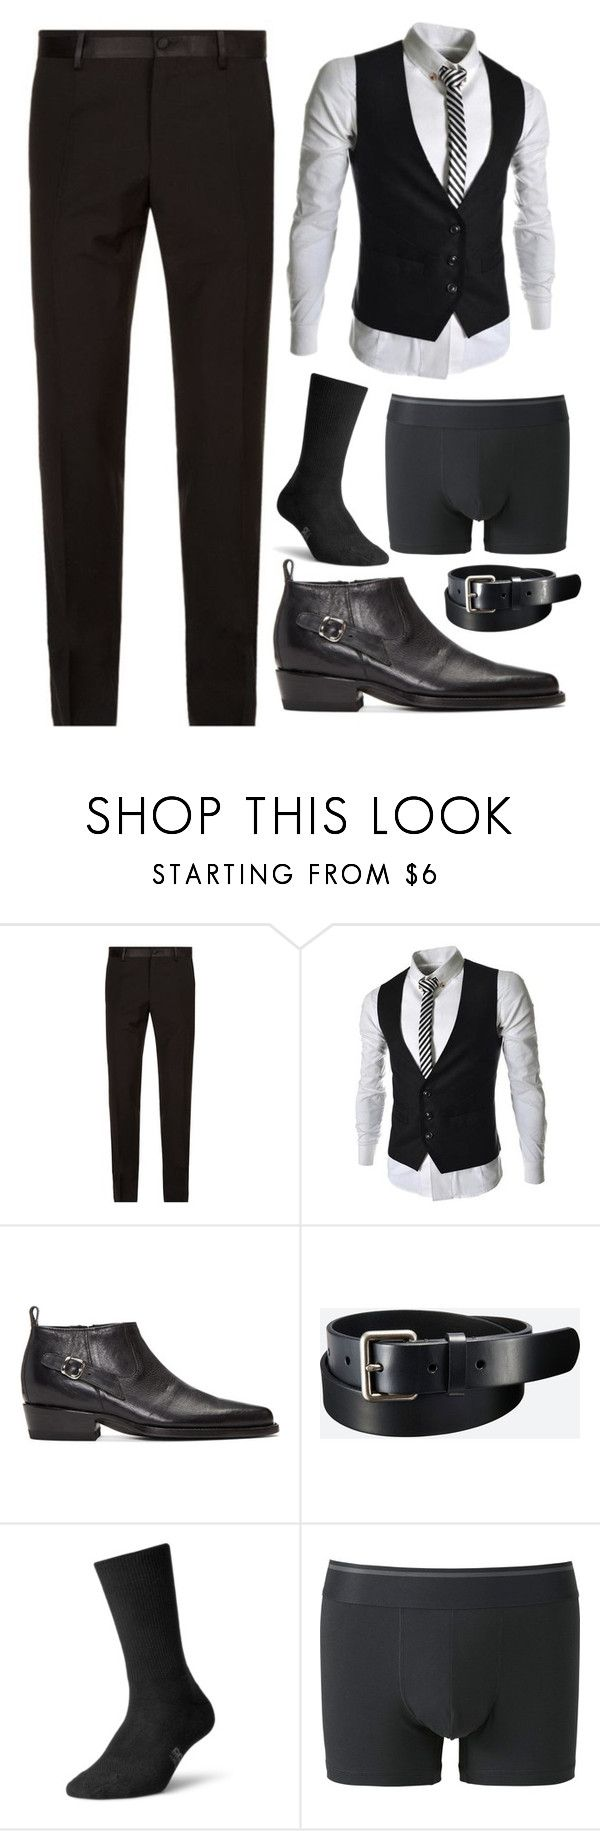 """Untitled #4267"" by natasha-maree13 ❤ liked on Polyvore featuring Dolce&Gabbana, Enfants Riches Déprimés, Uniqlo, New Balance, men's fashion and menswear"